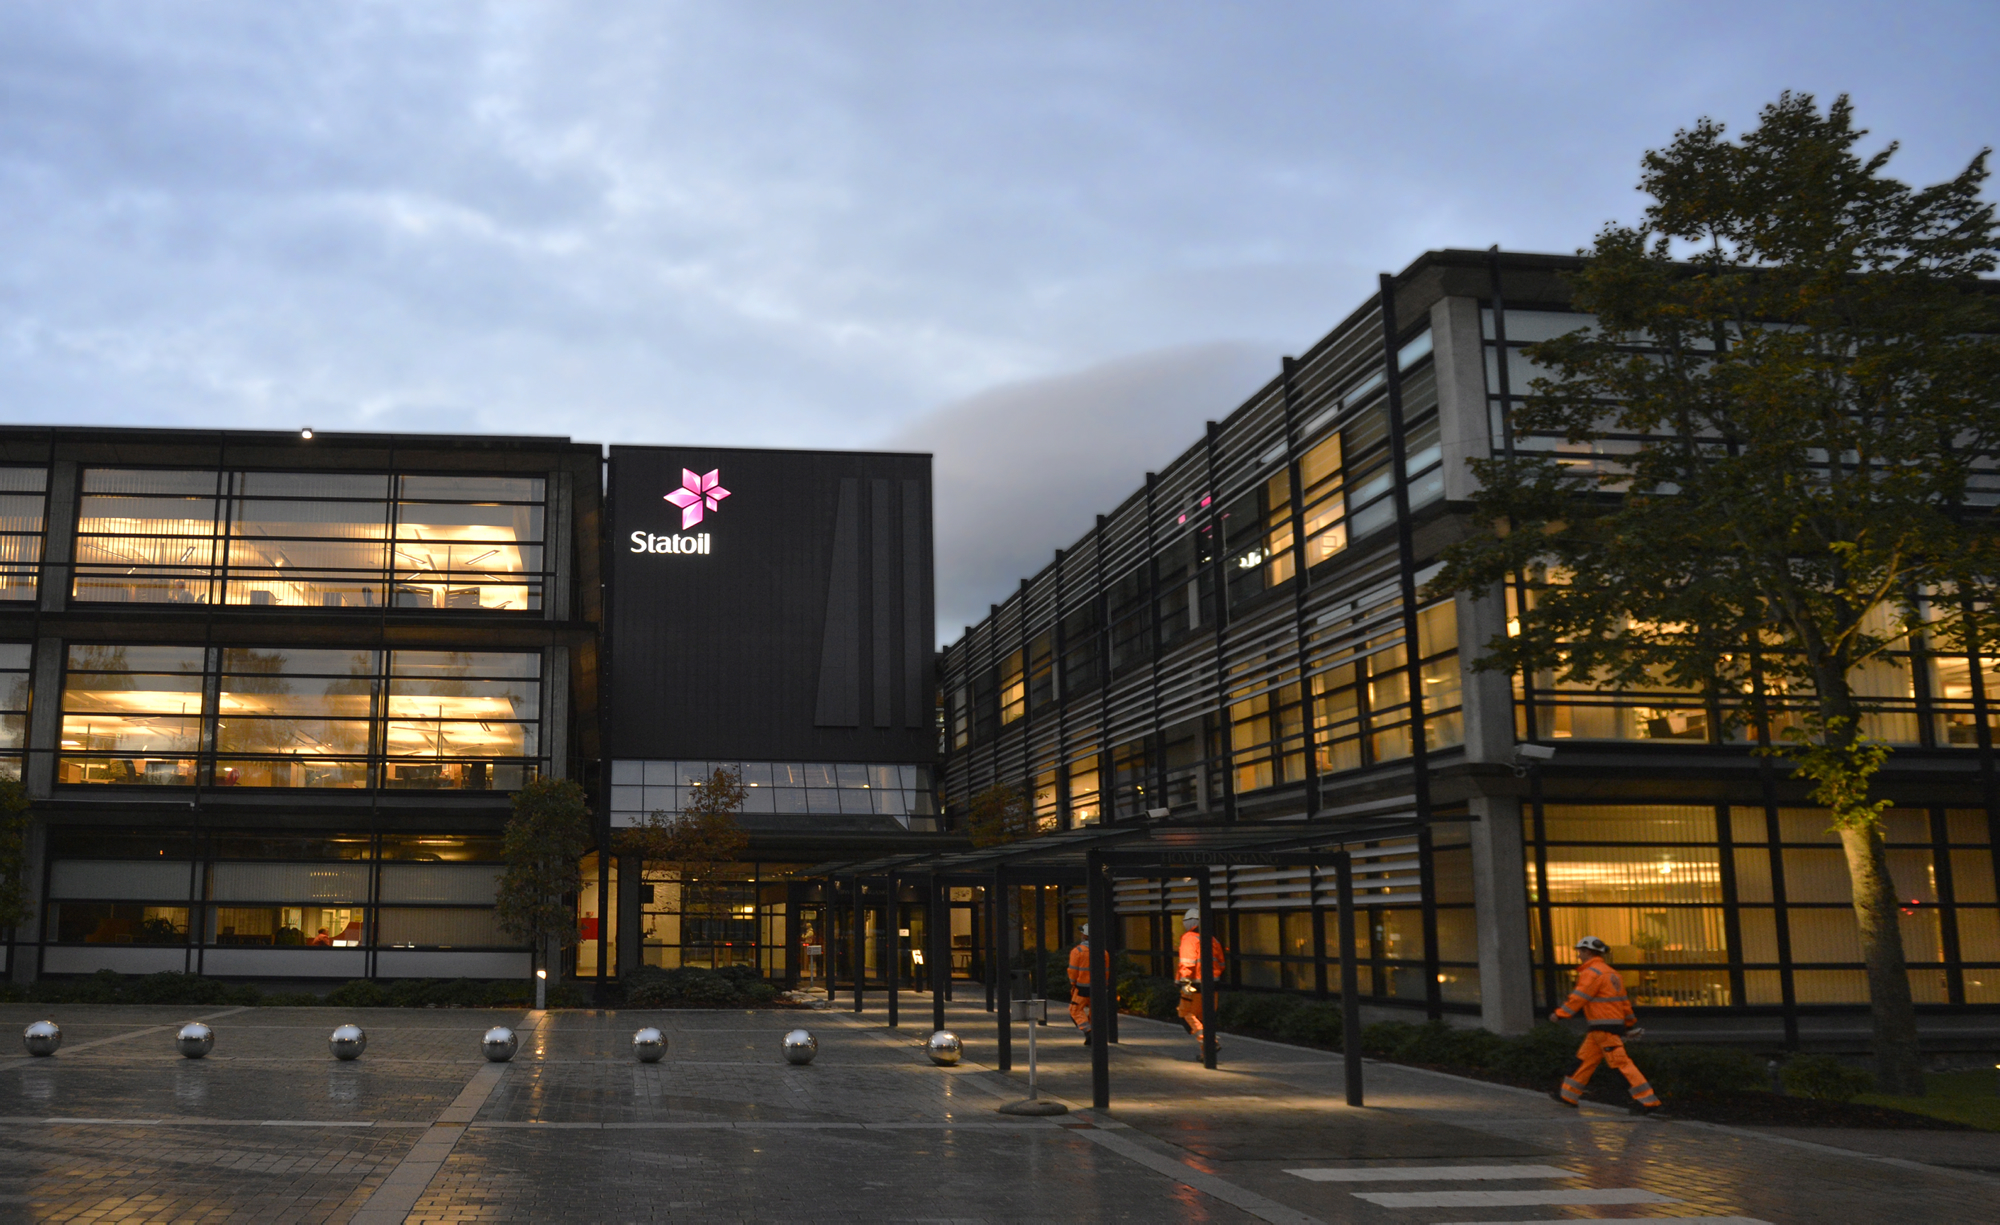 Statoil headquarters - Forus East